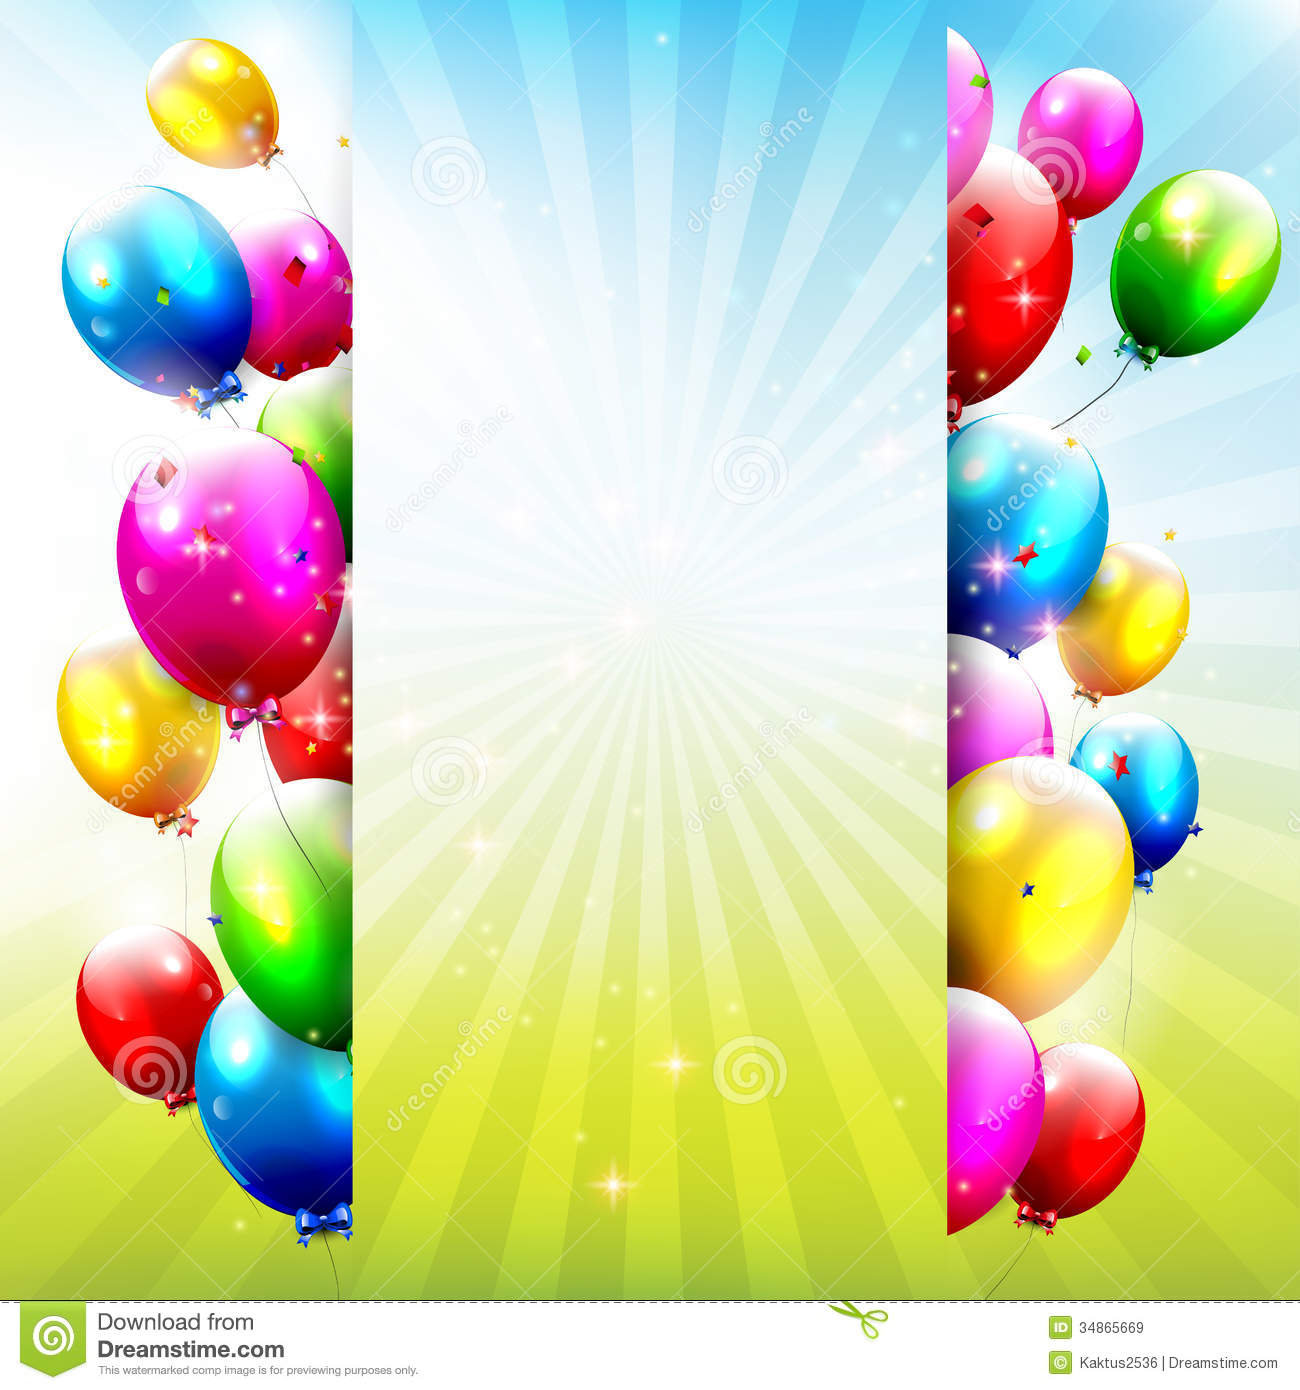 Birthday Balloons Royalty Free Stock Images - Image: 34865669